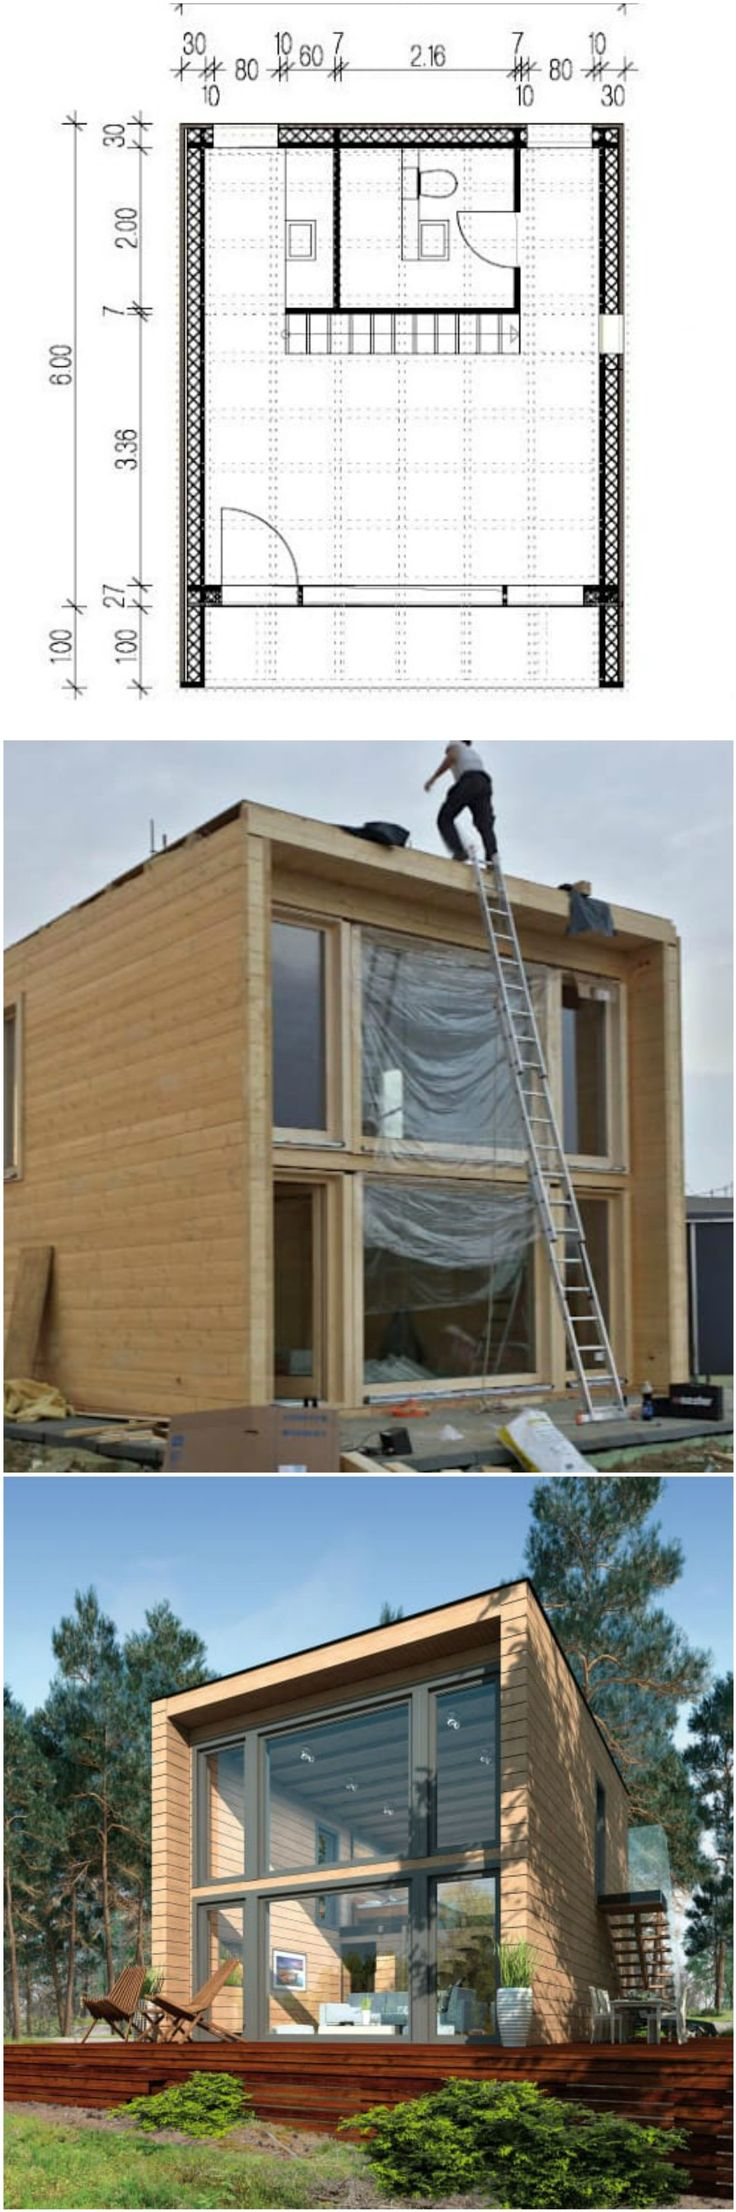 Compact, cheap but completely cool modular design is well-represented in the pre-fabricated 'kubu' house by Germany's THULE Blockhaus.   Modular architecture is totally a la mode these days, with prefabricated house designs popping up as popular options elsewhere in the homify network for those looking for affordable architectural solutions and contemporary cargotecture (shipping container architecture—a novel form of eco-friendly prefabricated architecture) that boasts great good looks on